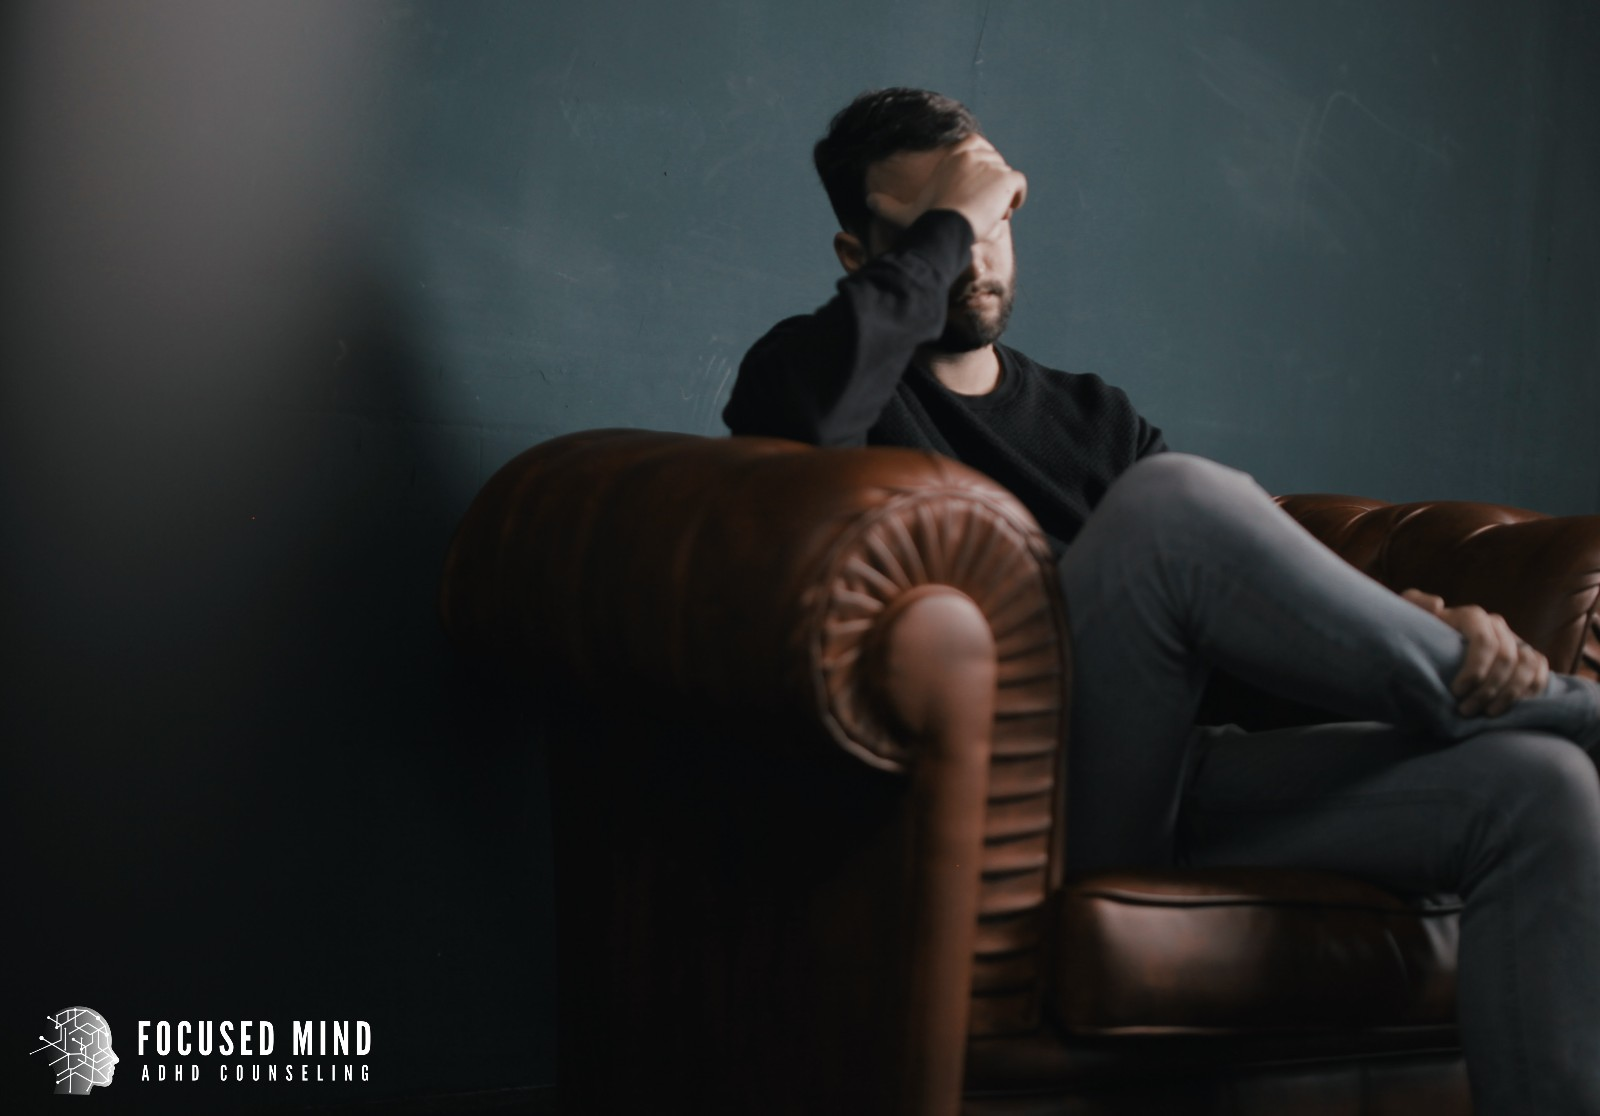 A man crosses one leg over the other as he sits in an armchair. He appears upset, and is resting his hand against his forehead. This could symbolize the pain of rejection. We offer similar support with rejection sensitive dysphoria treatment in Columbus, OH. Contact Focused Mind ADHD Counseling for ADHD treatment for adults, RSD ADHD treatment, and other services.